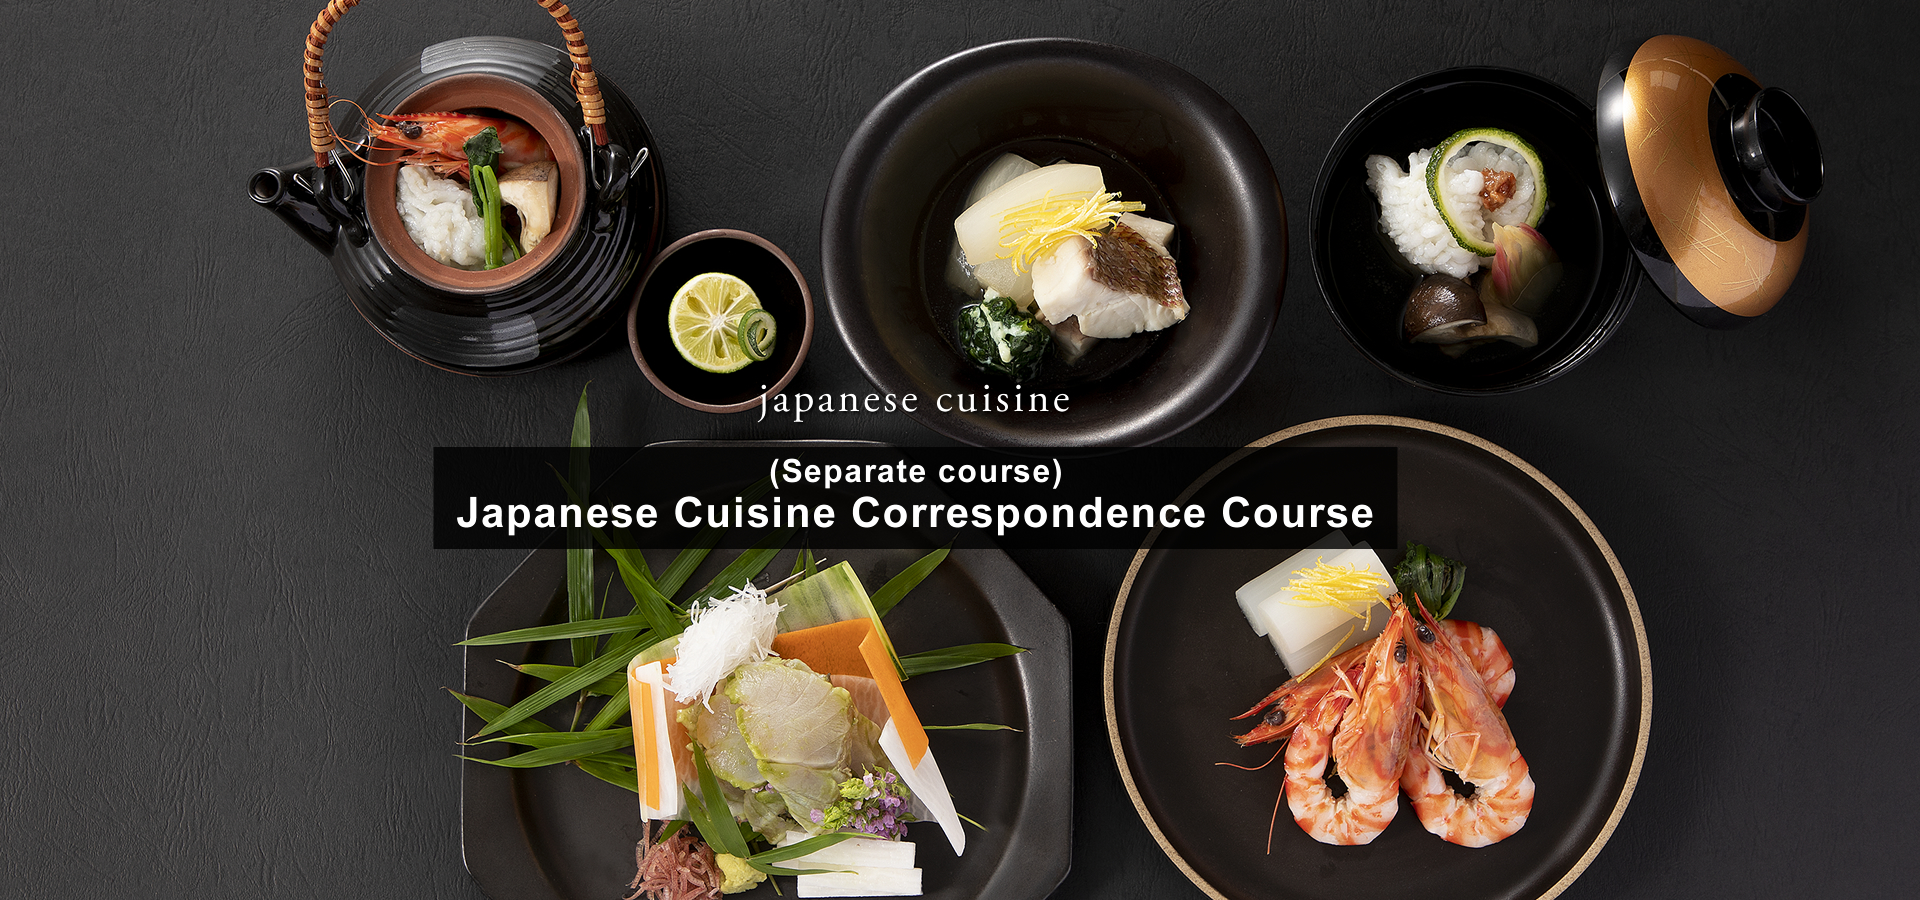 (Separate course) Western Confectionery Correspondence Course